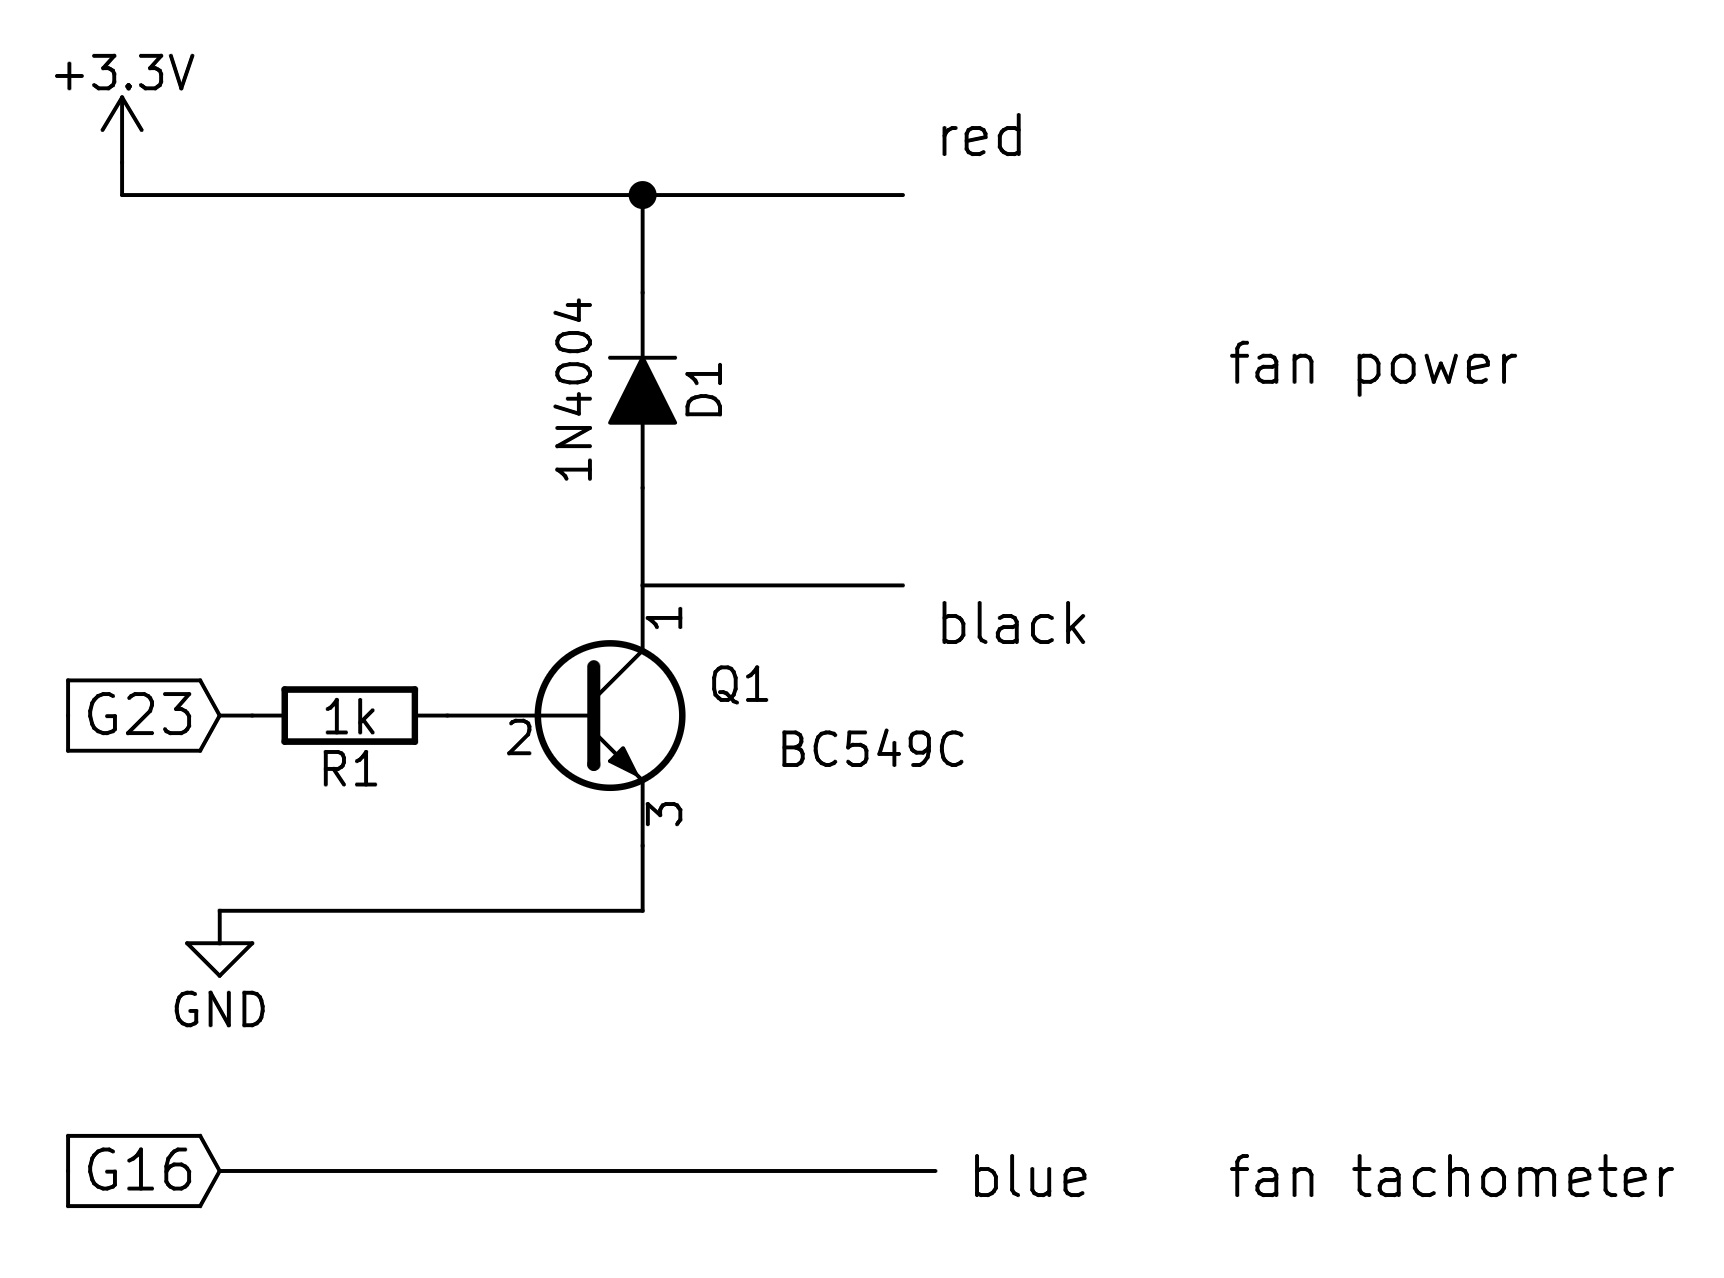 wiring 3w pwm fan wire diagram diagrams for wiring bathroom fan and lights  at n-0.co